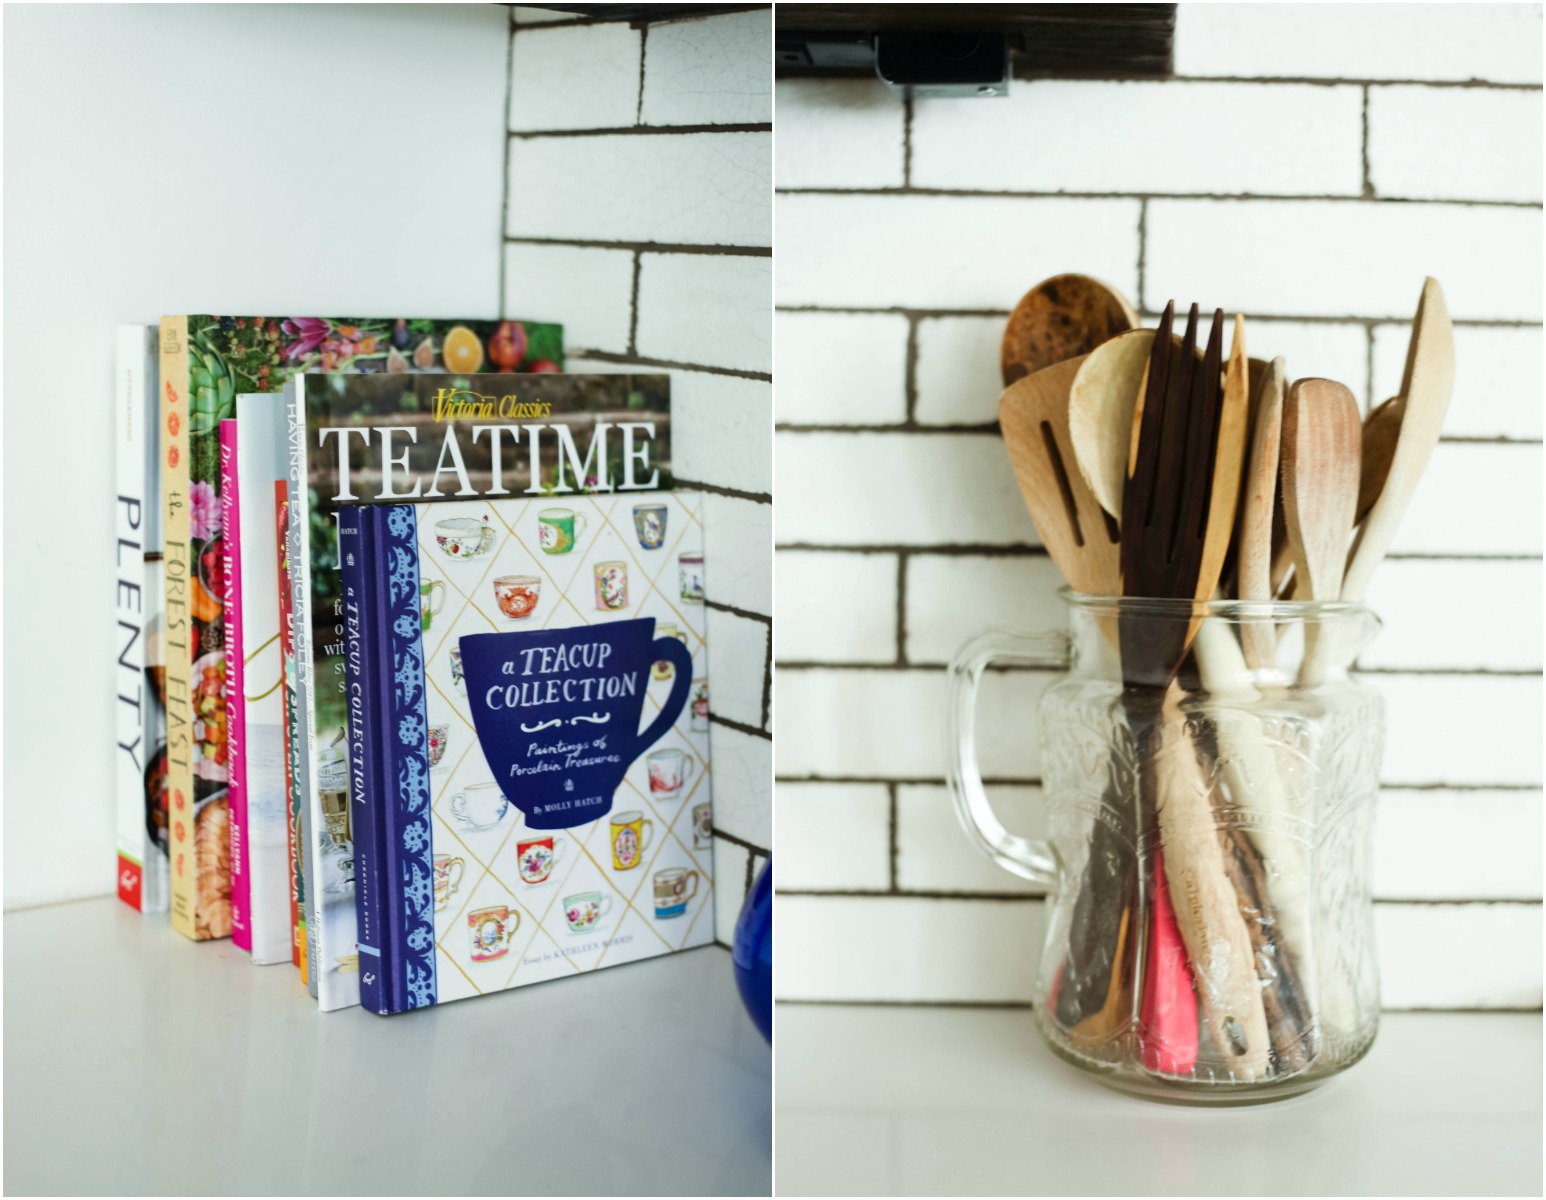 Style tip: Display your favorite cook books and wooden utensils in a clear pitcher.